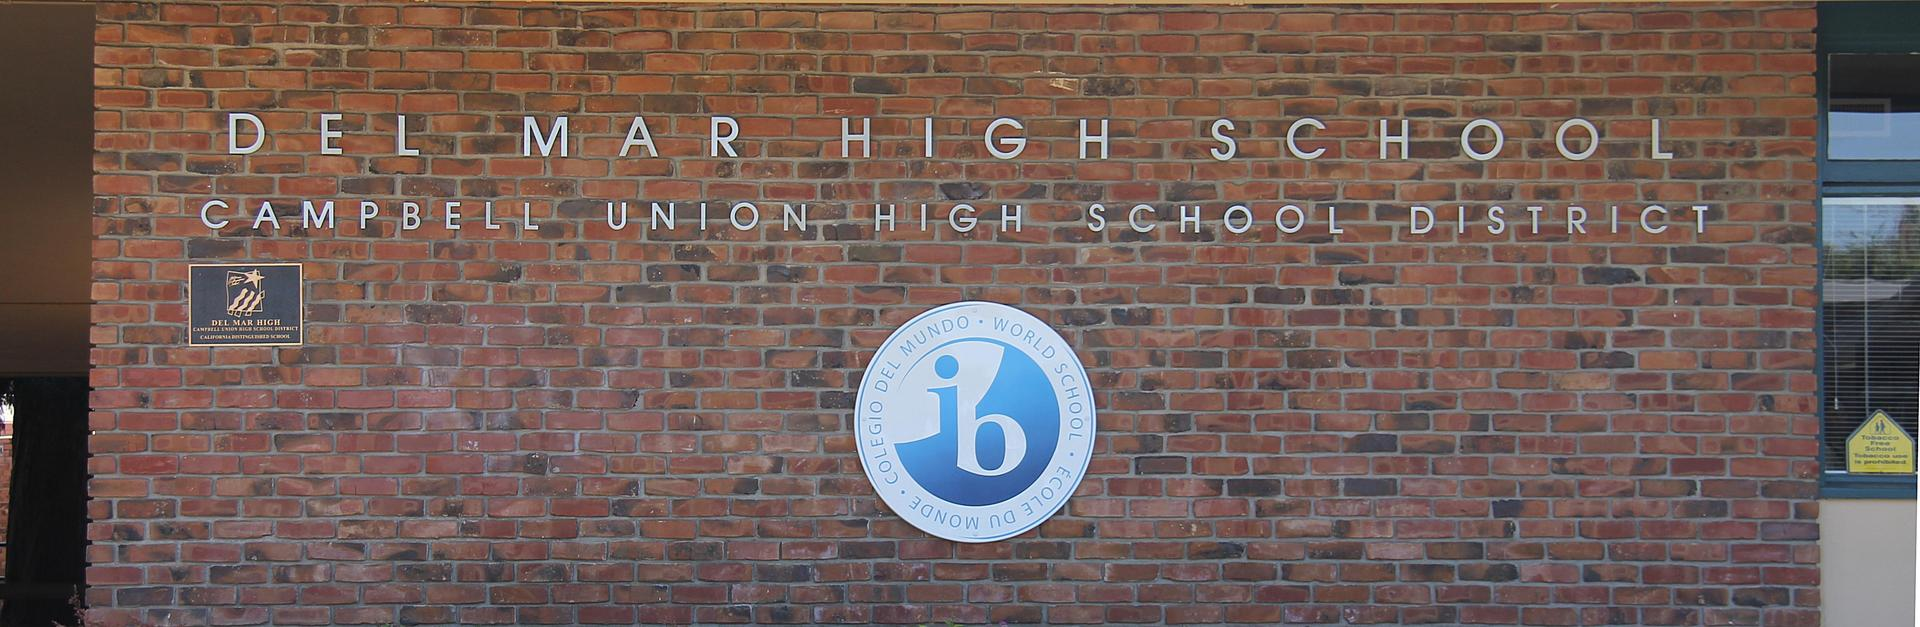 Image of front of Del Mar High School with IB World School Sign